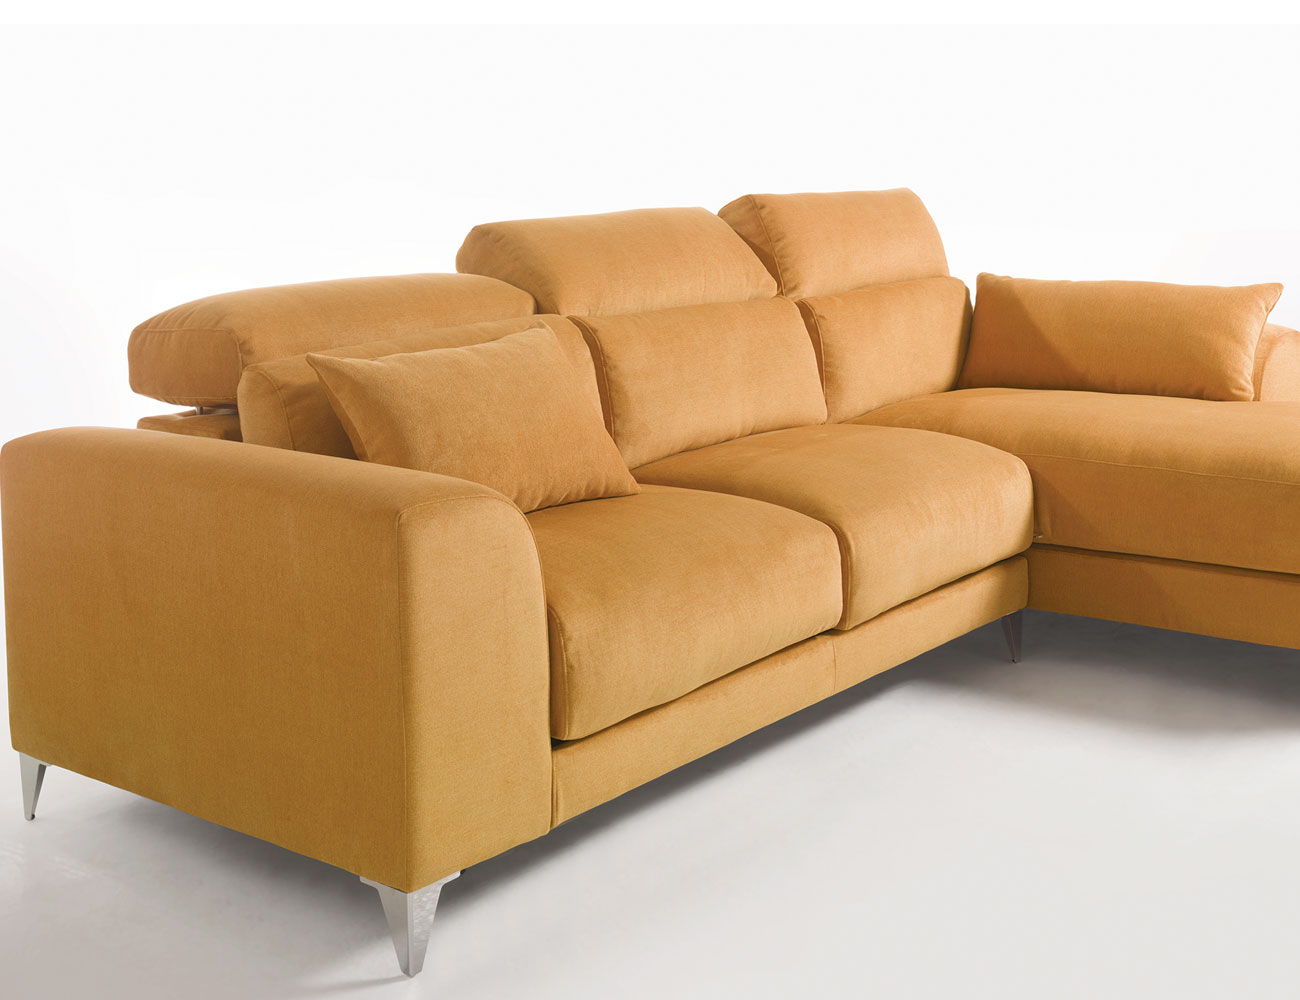 Sofa chaiselongue gran lujo decorativo patas altas amarillo 225